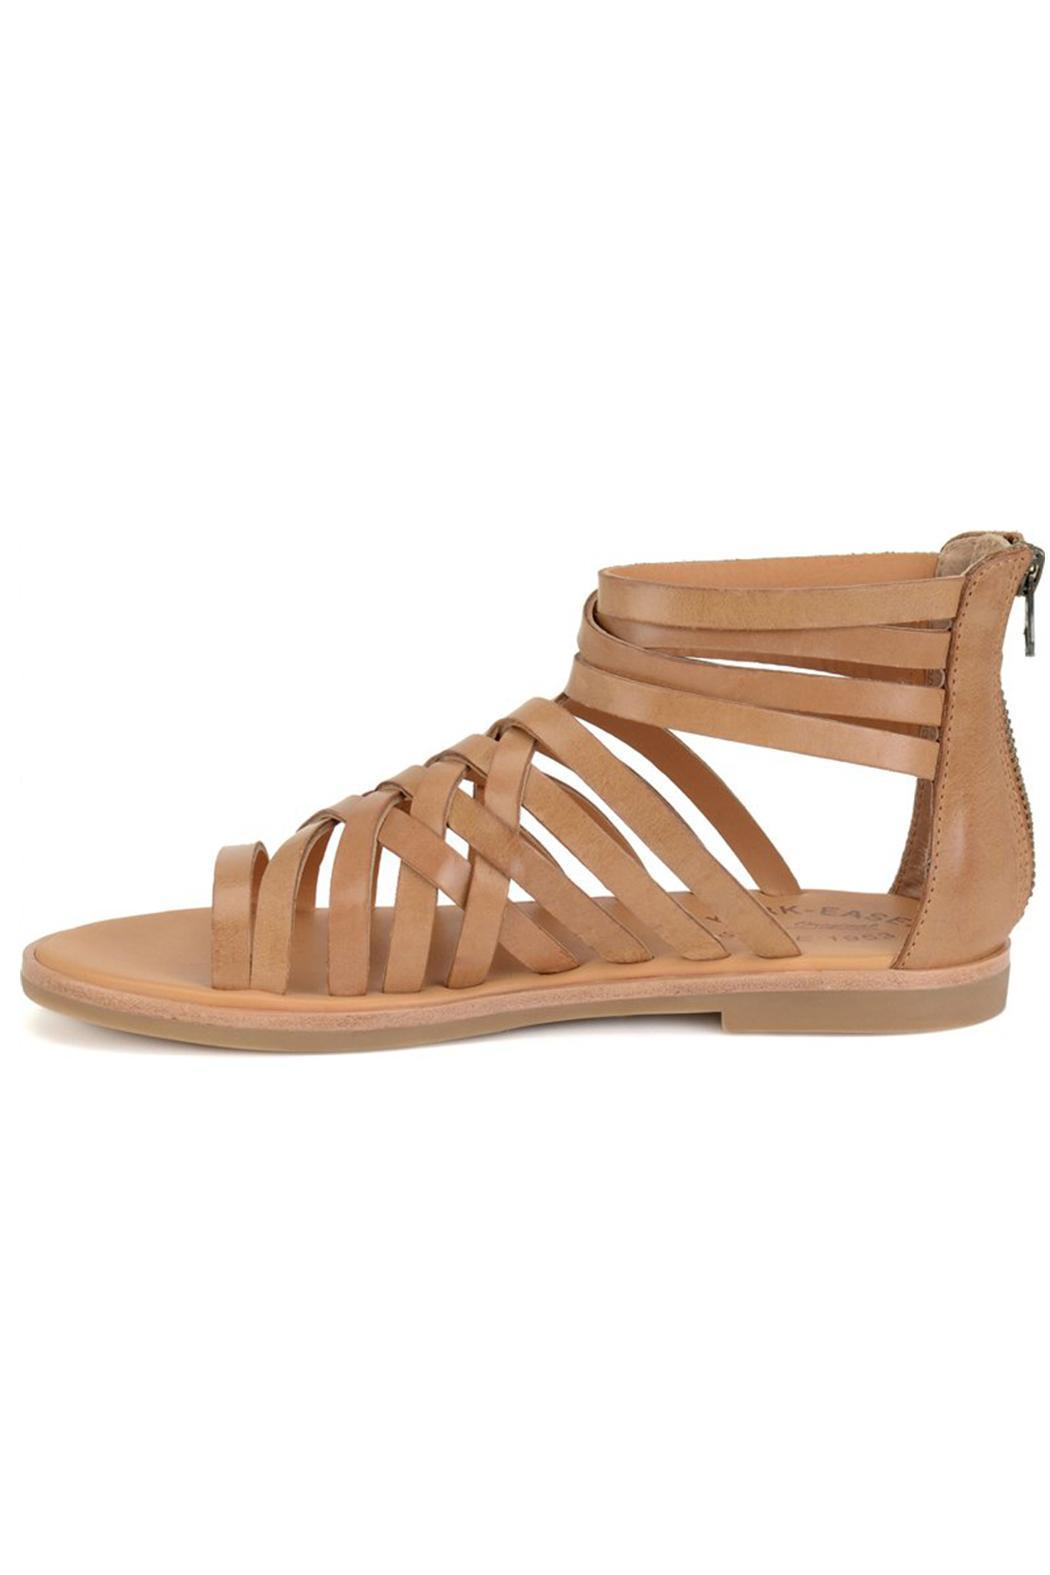 4615d85b2b4 Kork Ease Palmyra Gladiator Sandal from Vermont by green envy ...